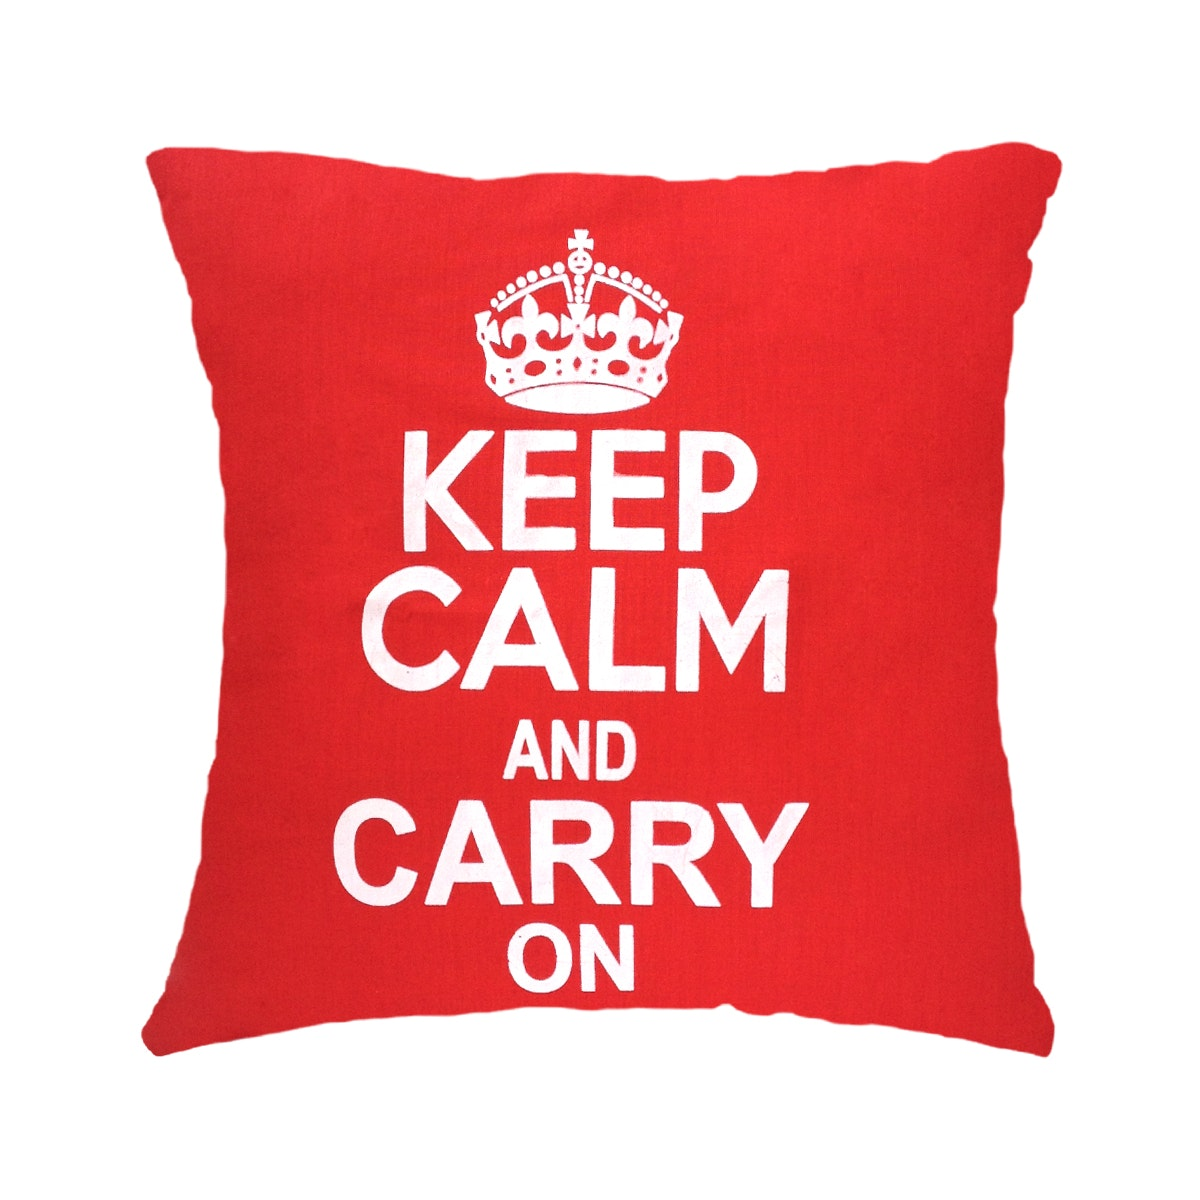 Stiletto In Style Cushion Cover Keep Calm & Carry On (Red) 40 X 40Cm